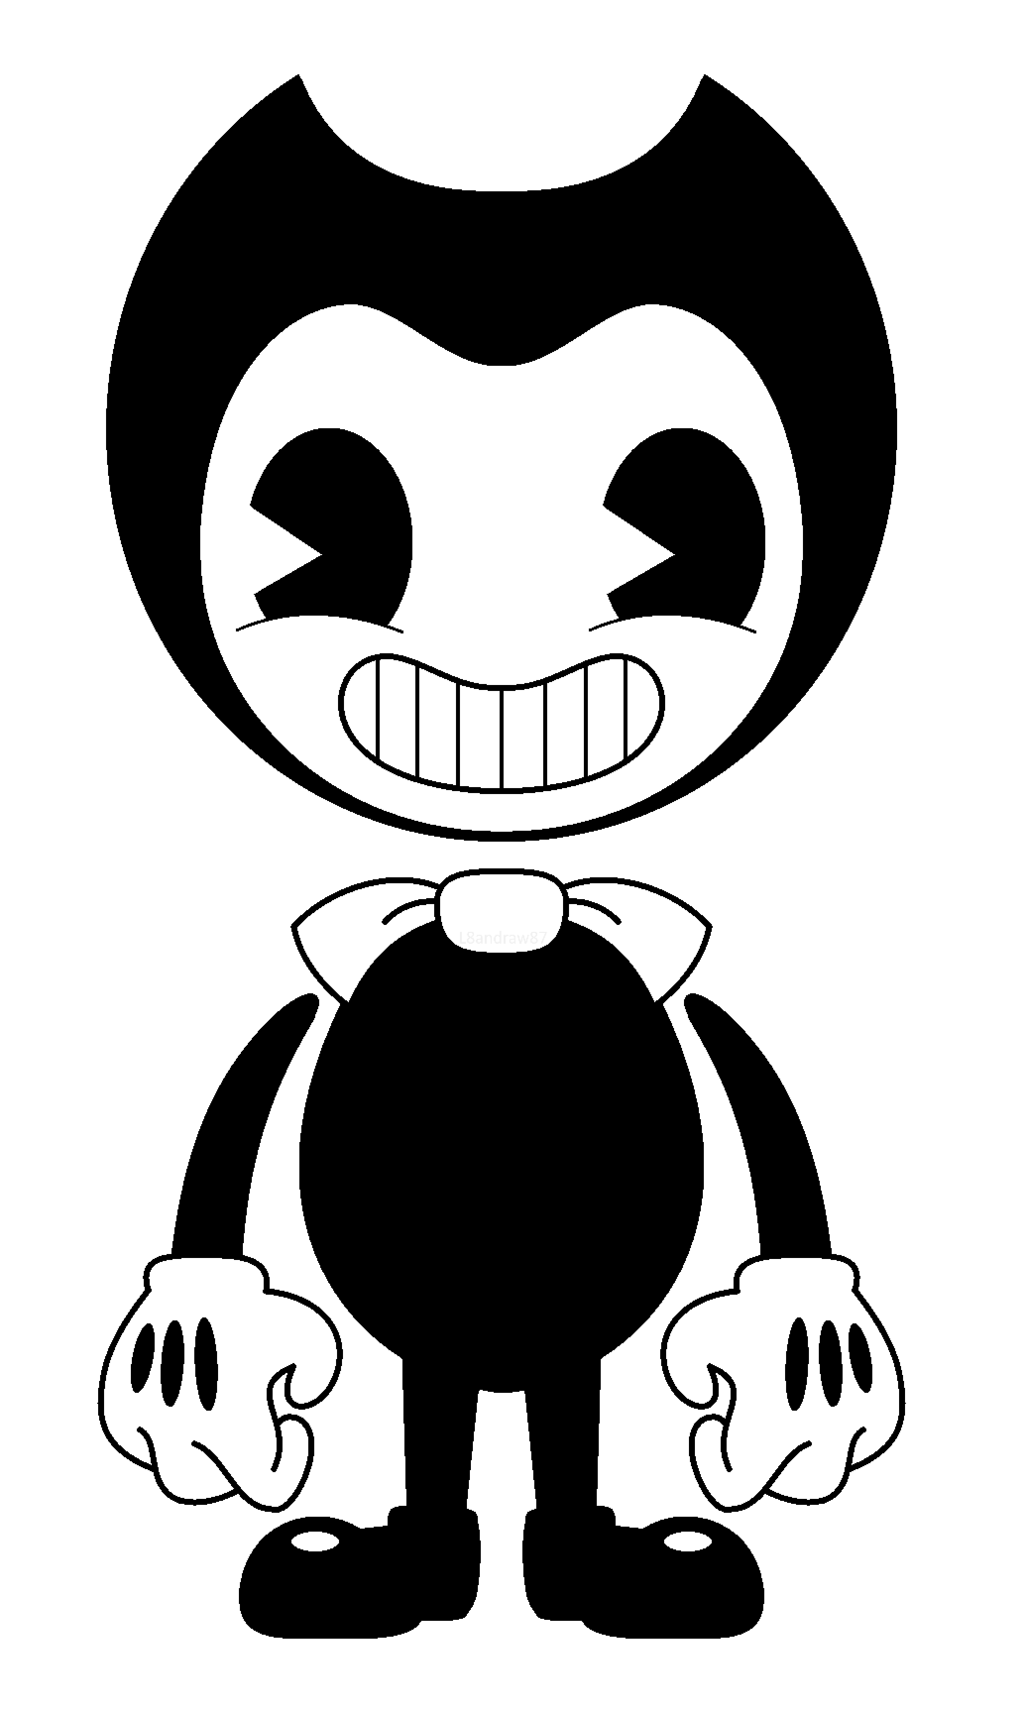 Which Bendy and the Ink machine character are you? (2)